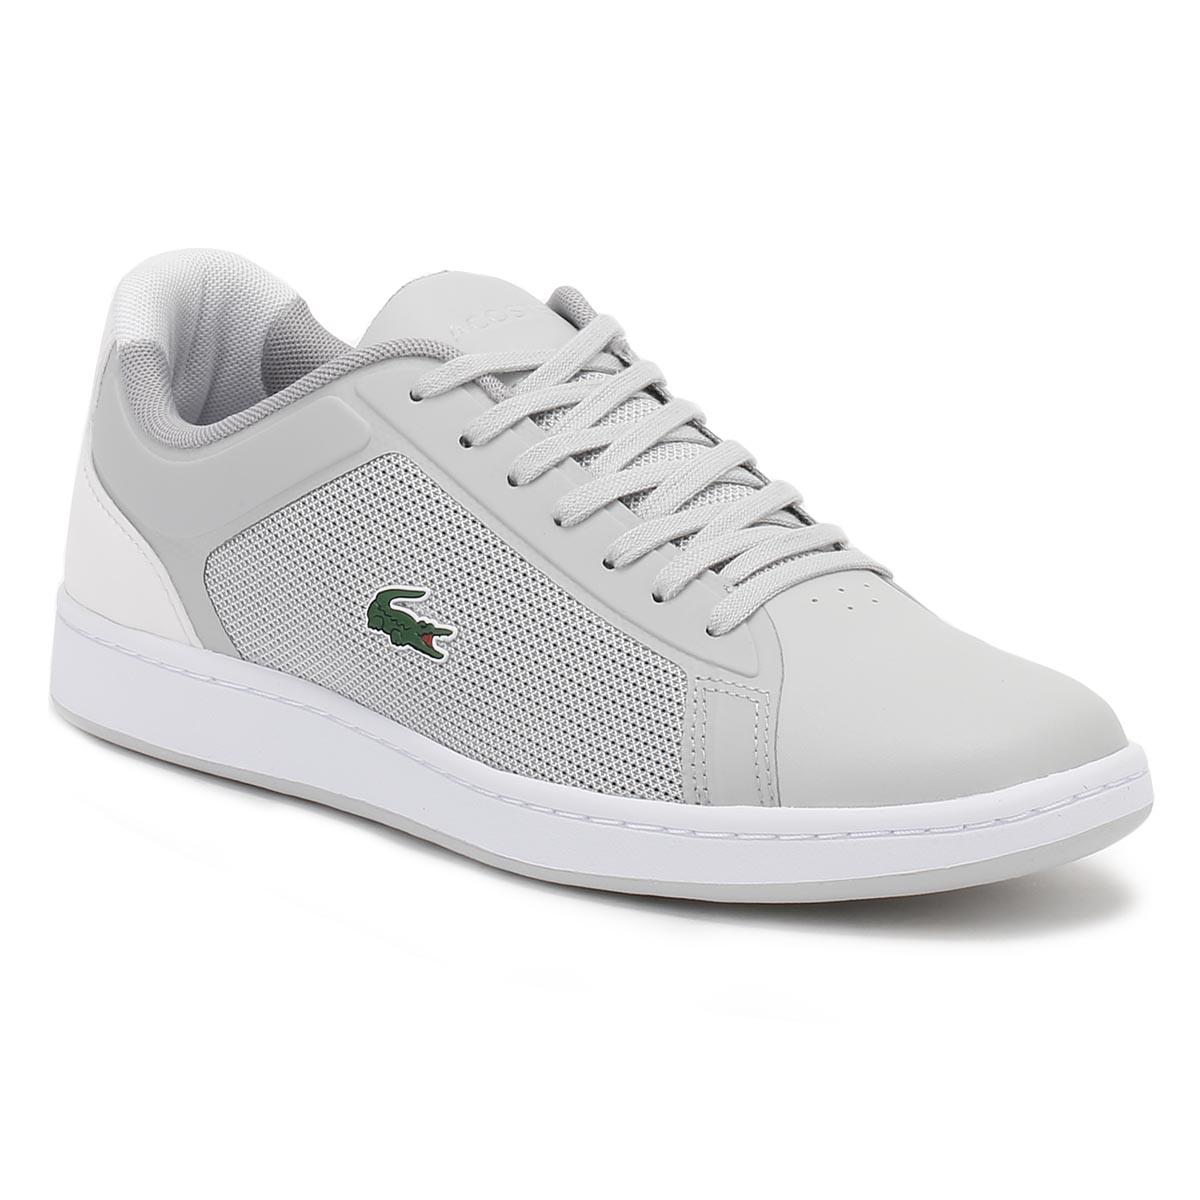 6eff2a01b Lyst - Lacoste Mens Light Grey Endliner 217 1 Spm Trainers in Gray ...